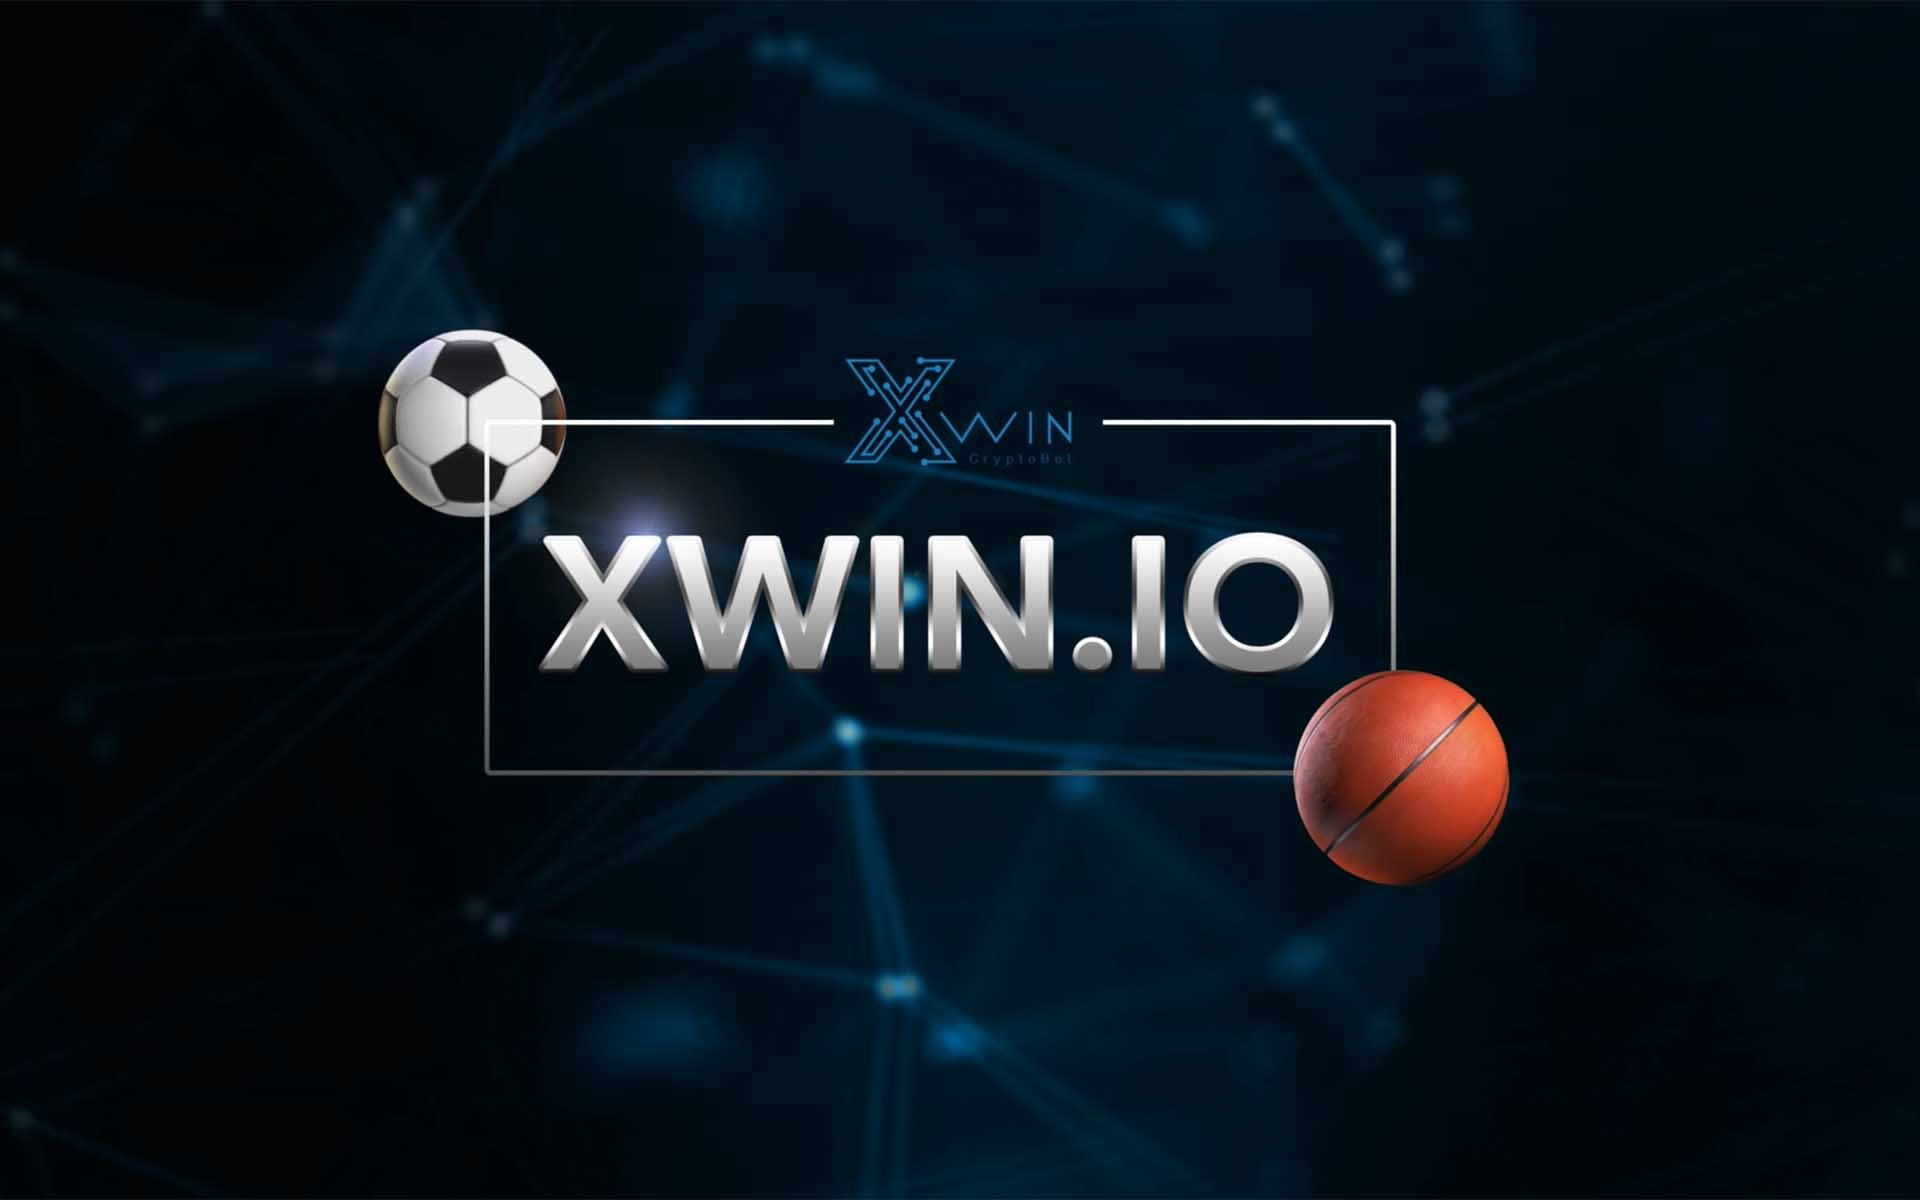 Blockchain Betting and Profit Sharing: A Look into the XWIN ICO